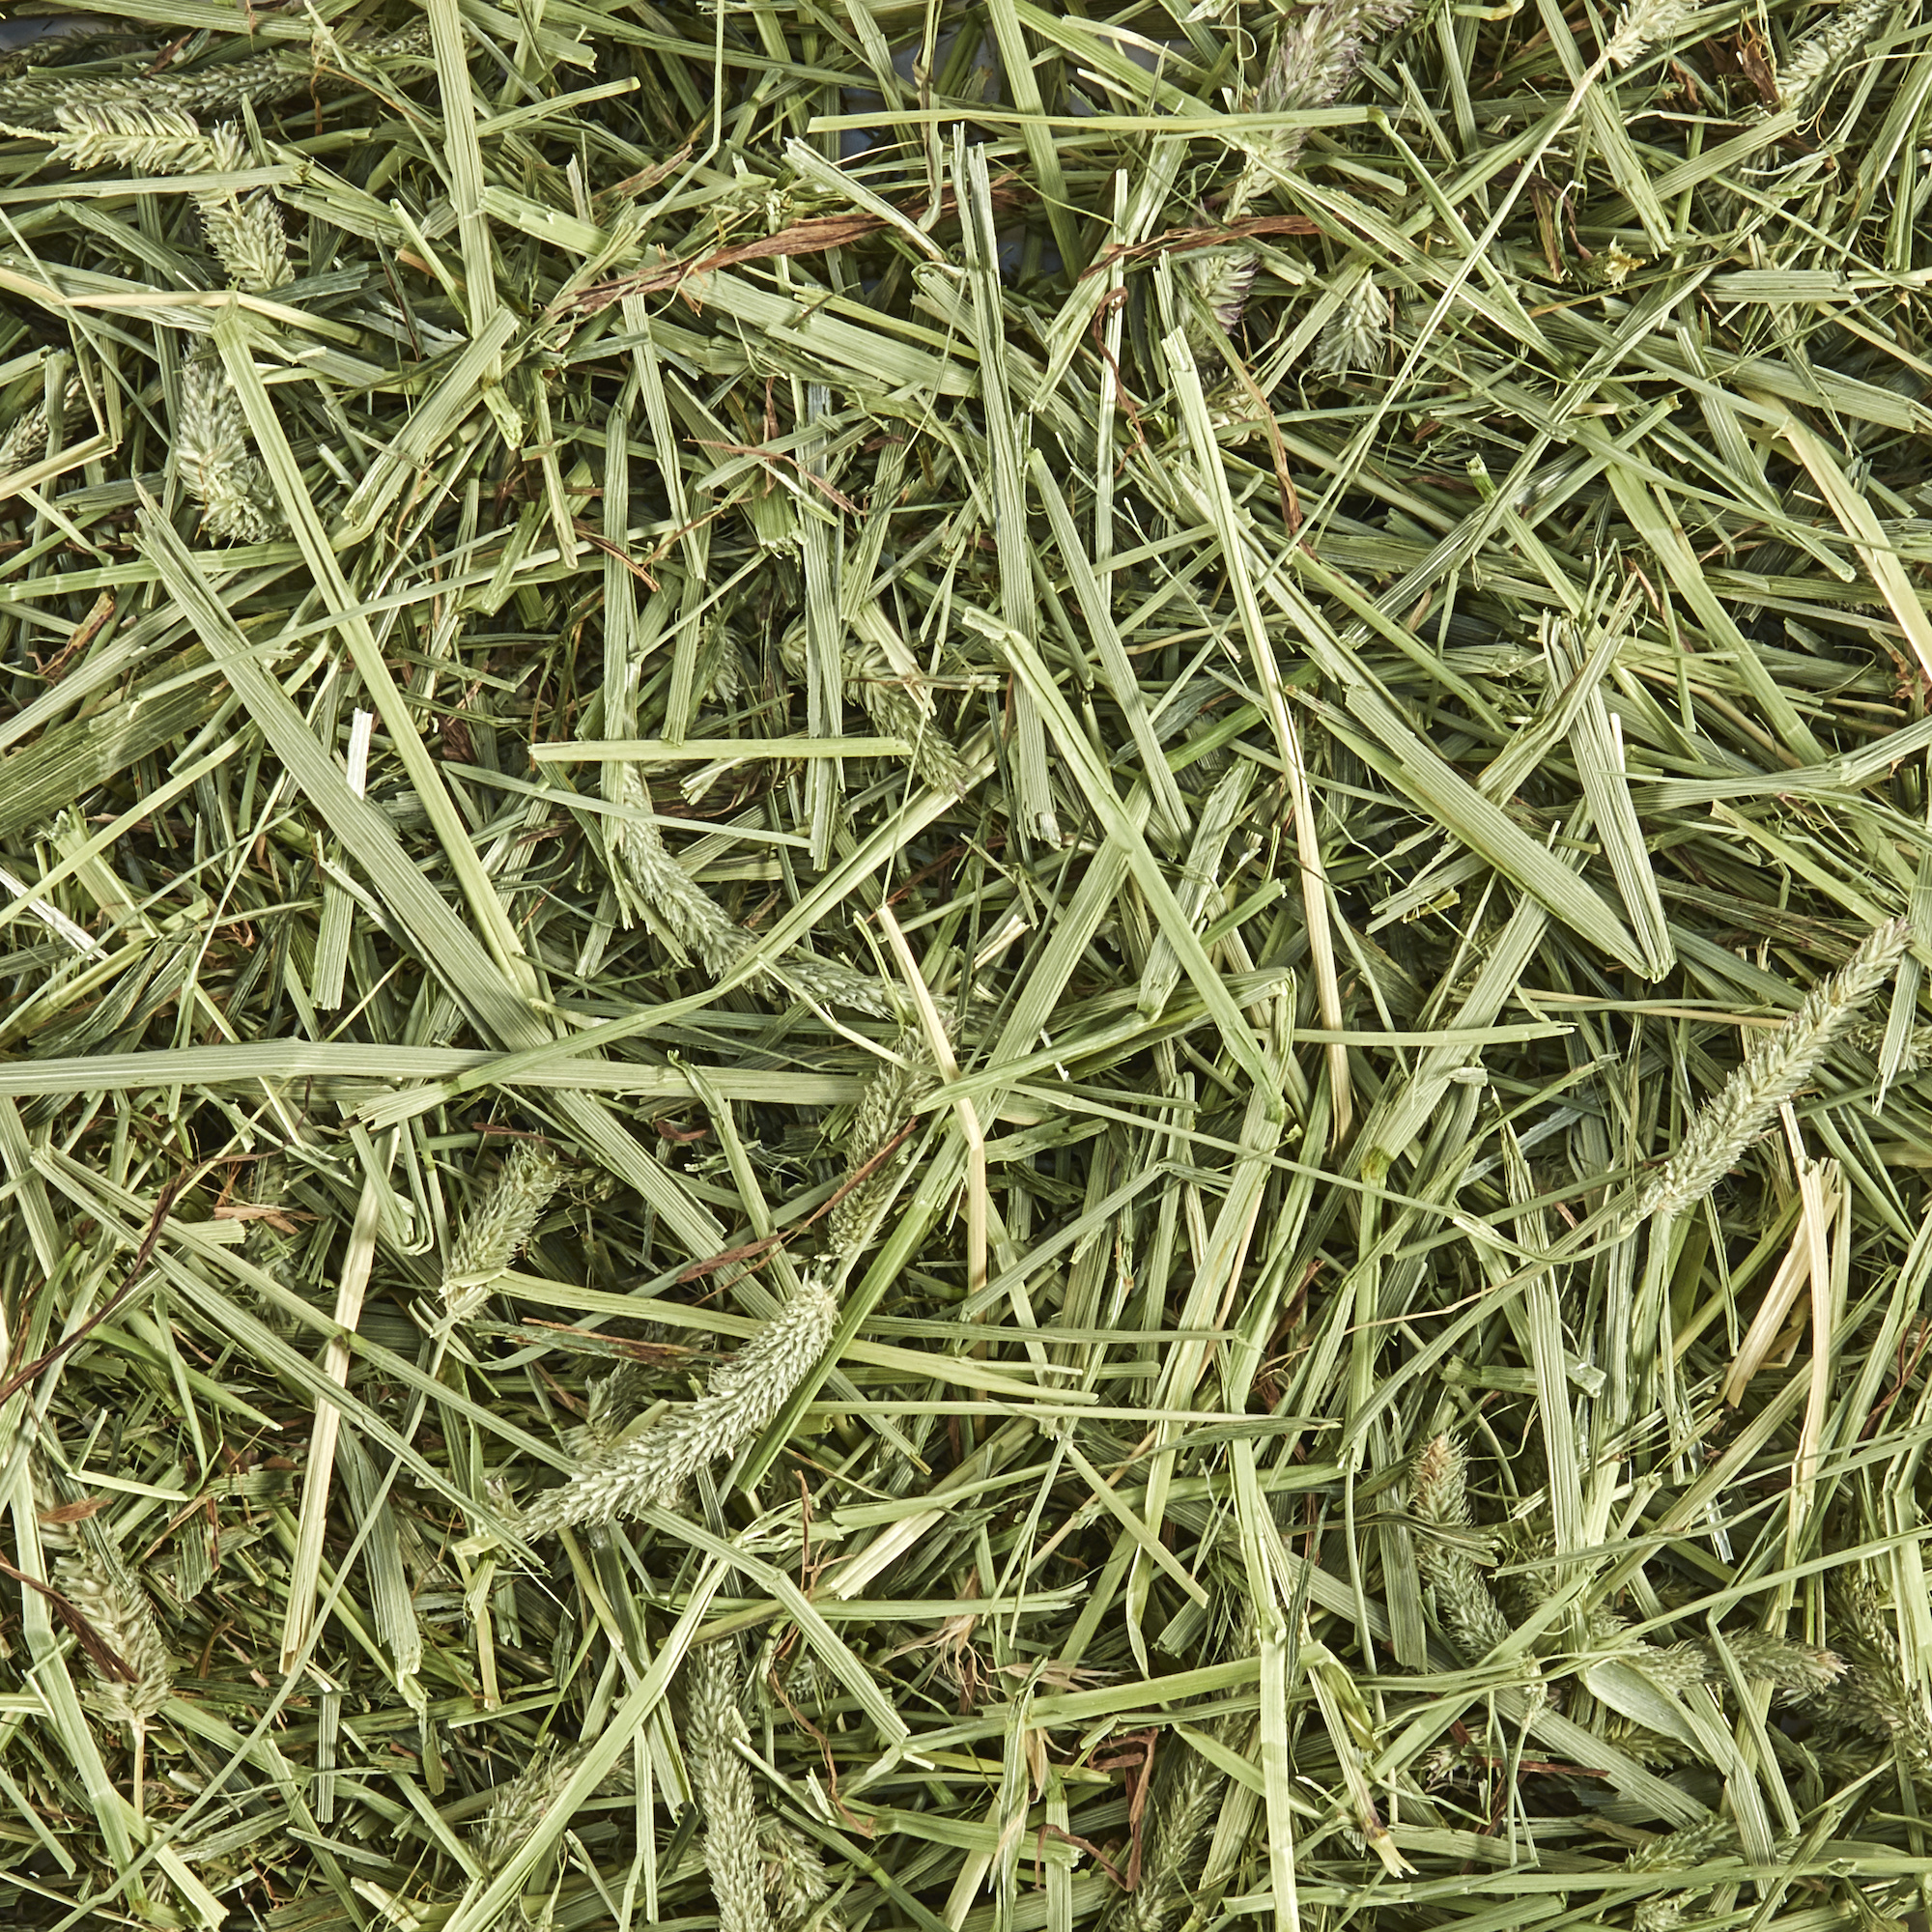 Forti-Diet Natural Timothy Hay, 48.0 OZ